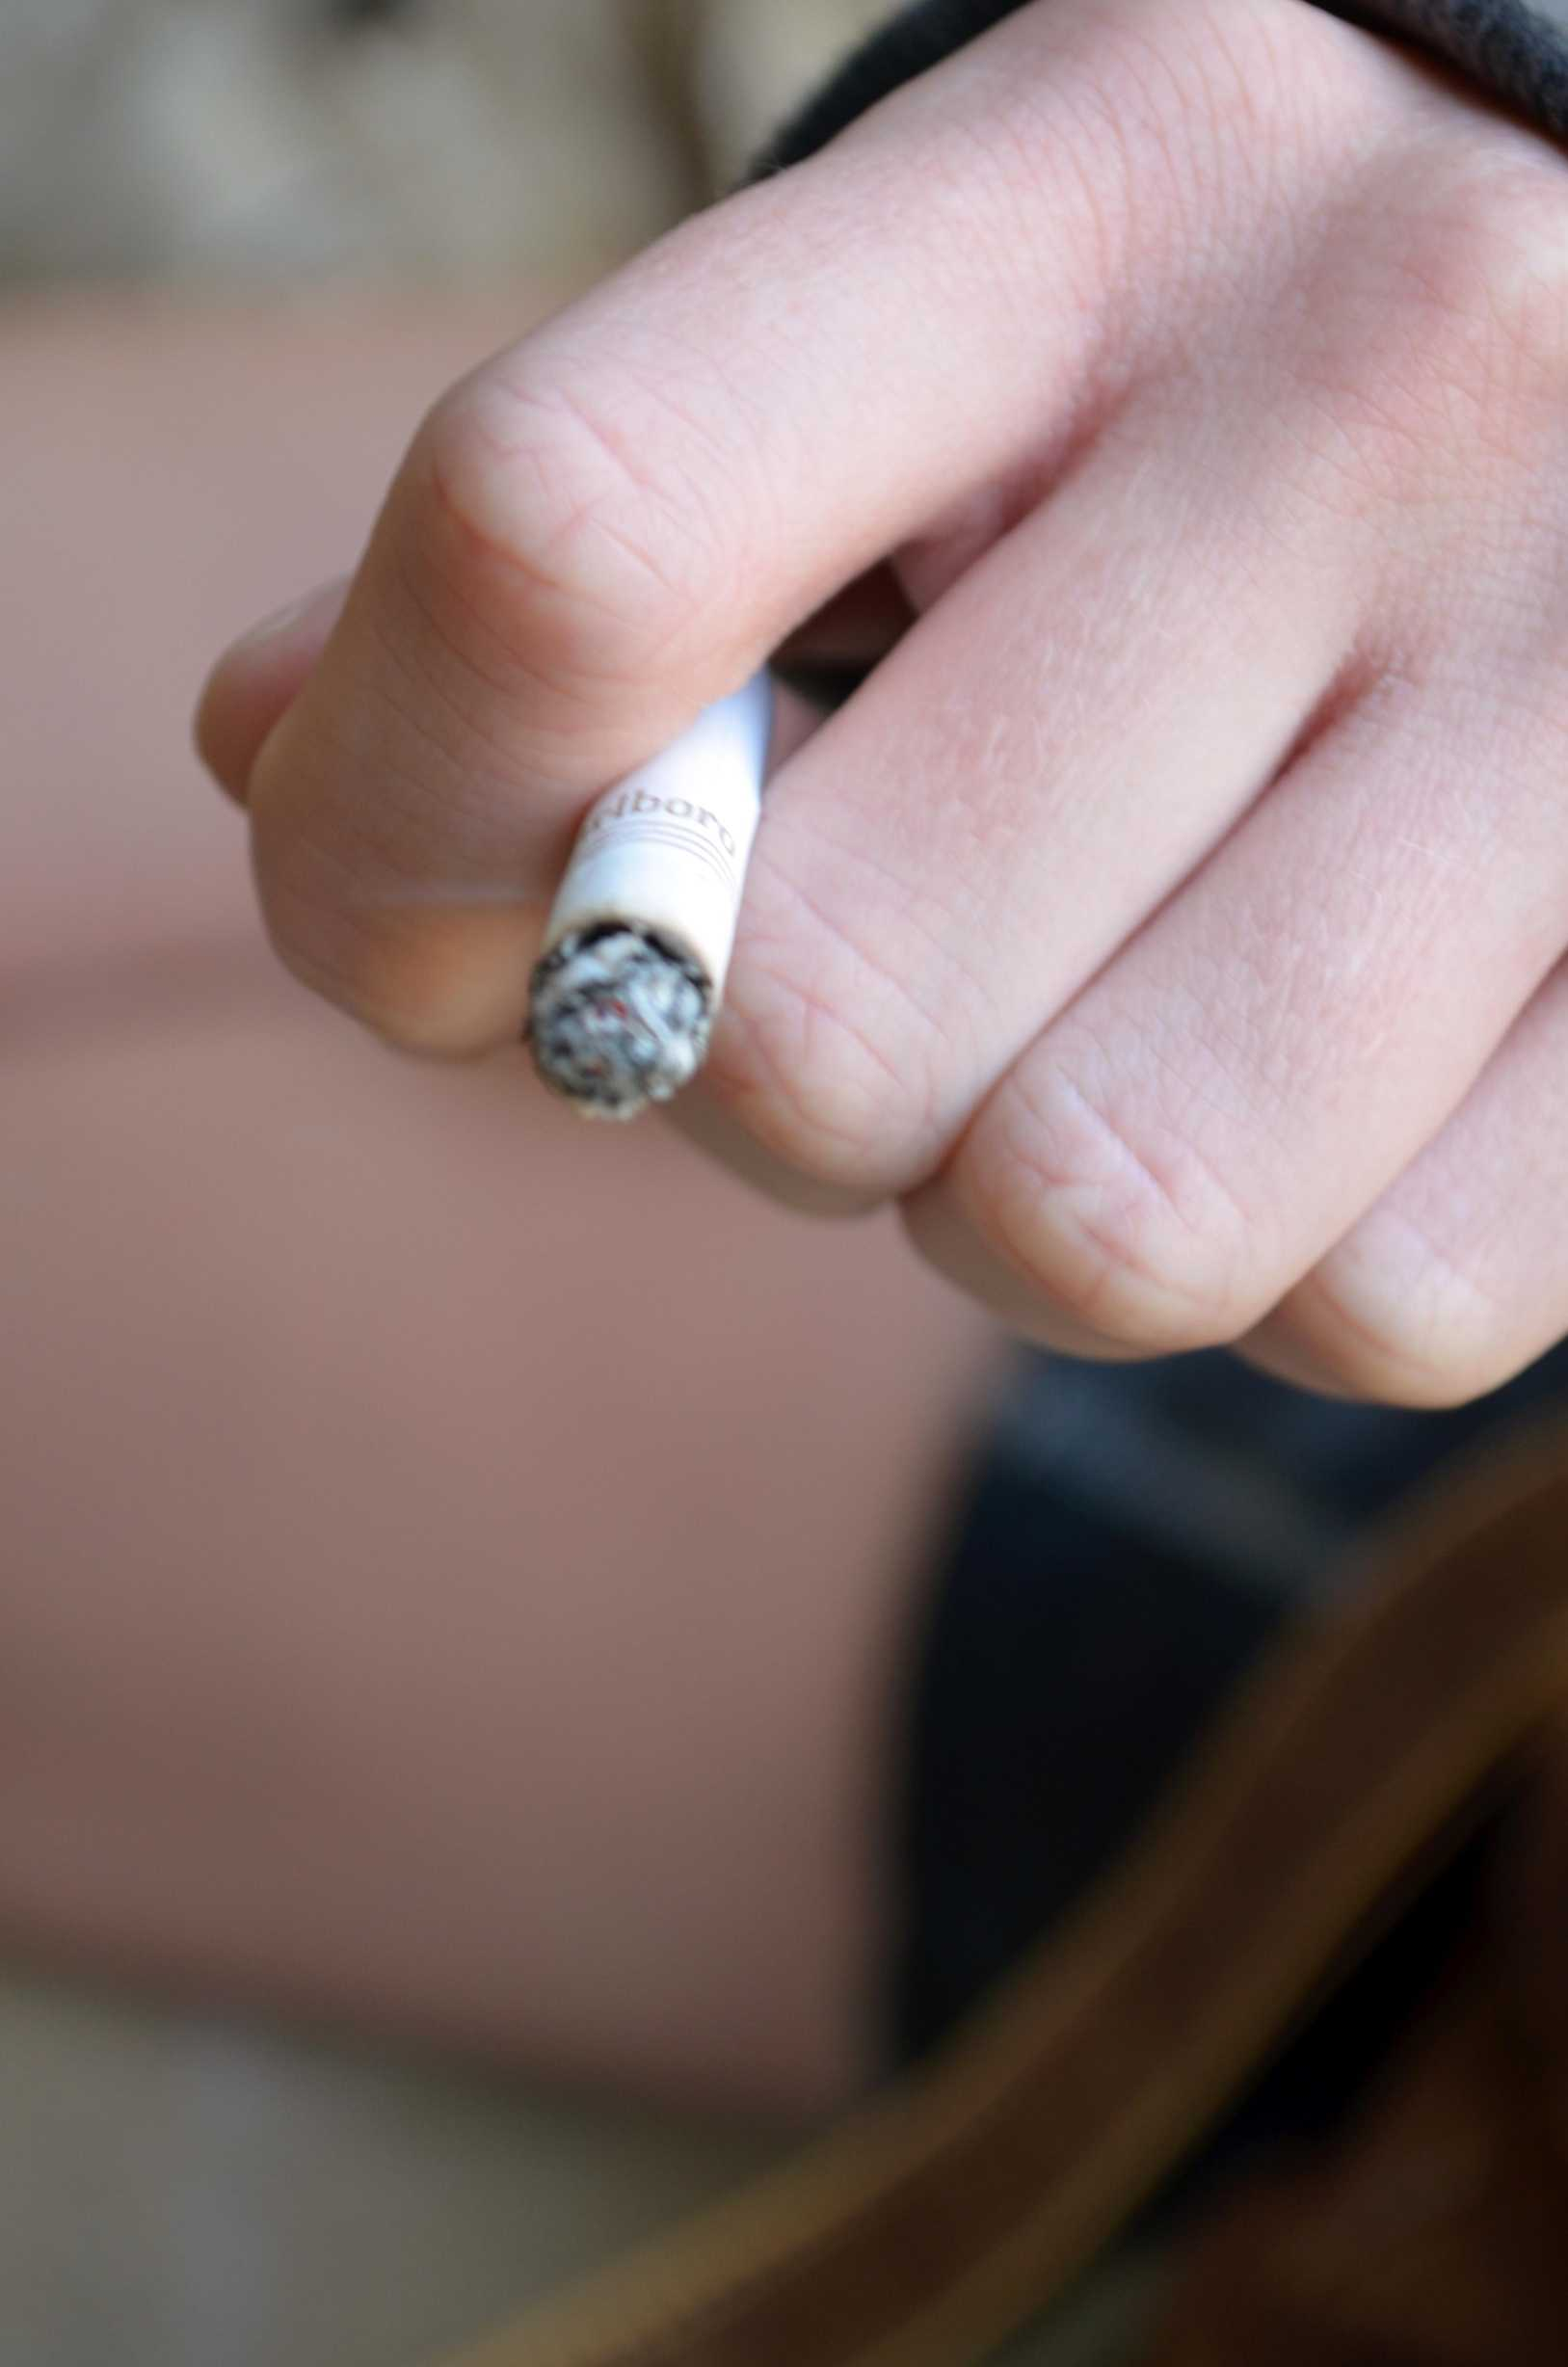 A student lights up a cigarette. Loyola's campus is now non-smoking